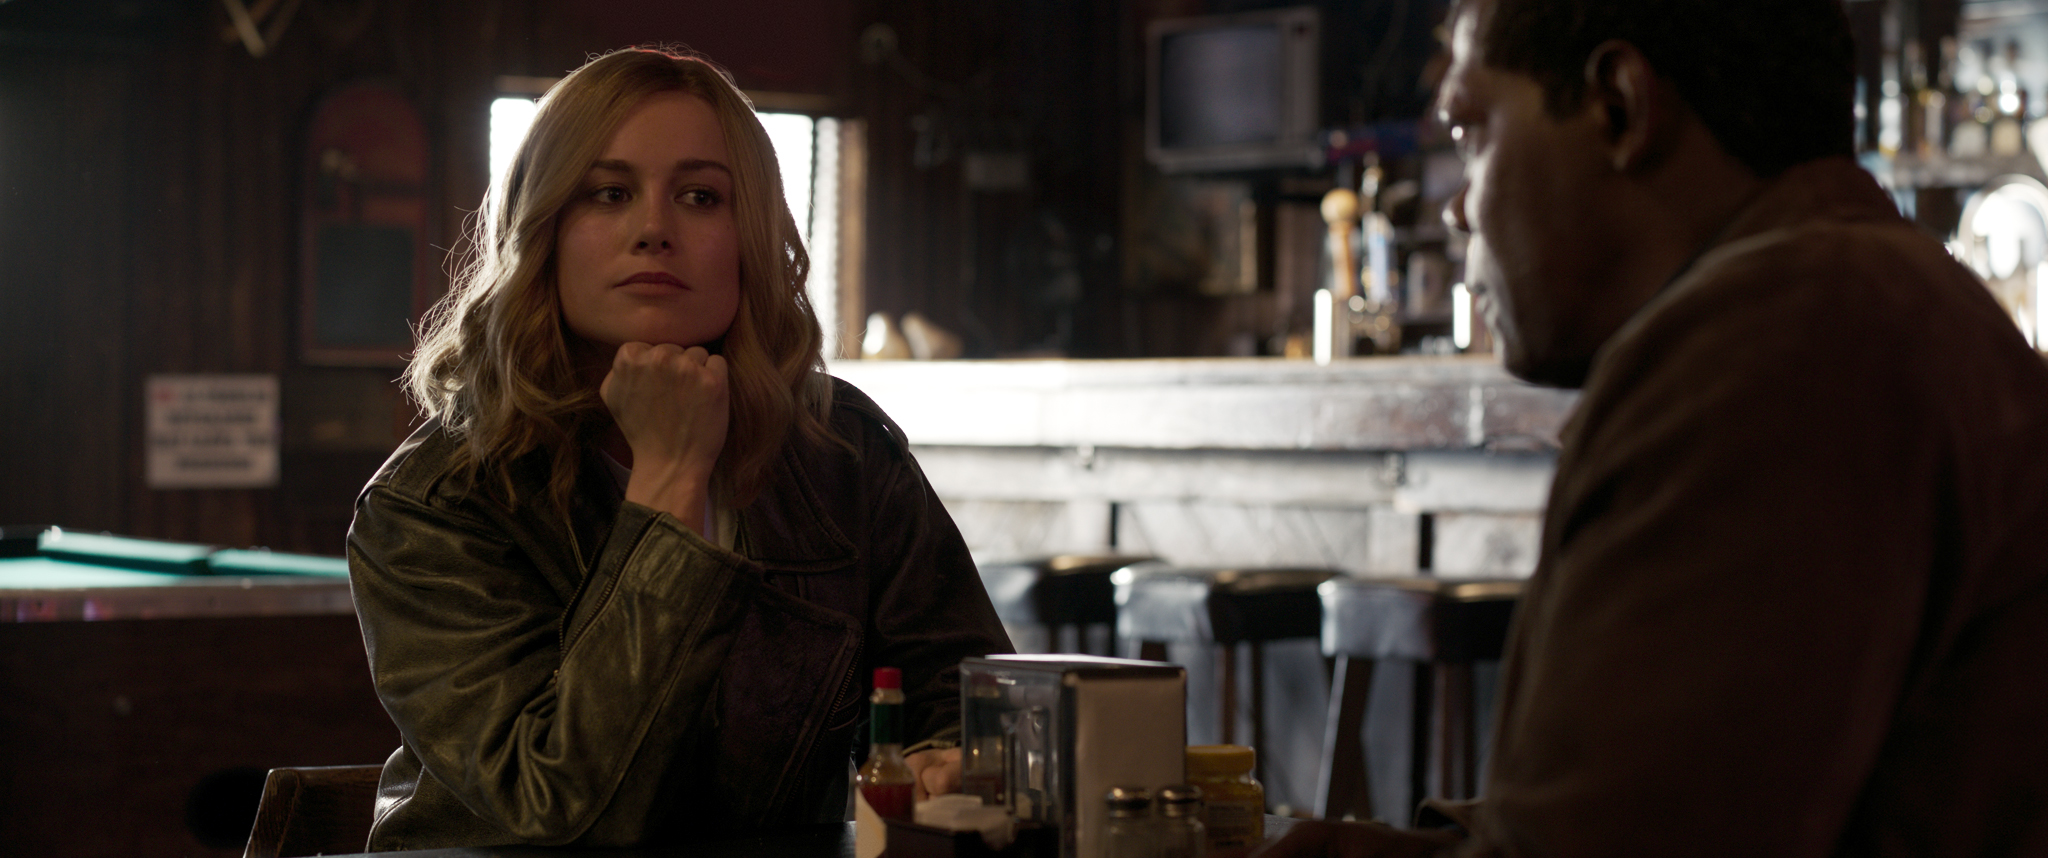 Captain Marvel Hi-Res Still 1 - Carol Danvers, Nick Fury